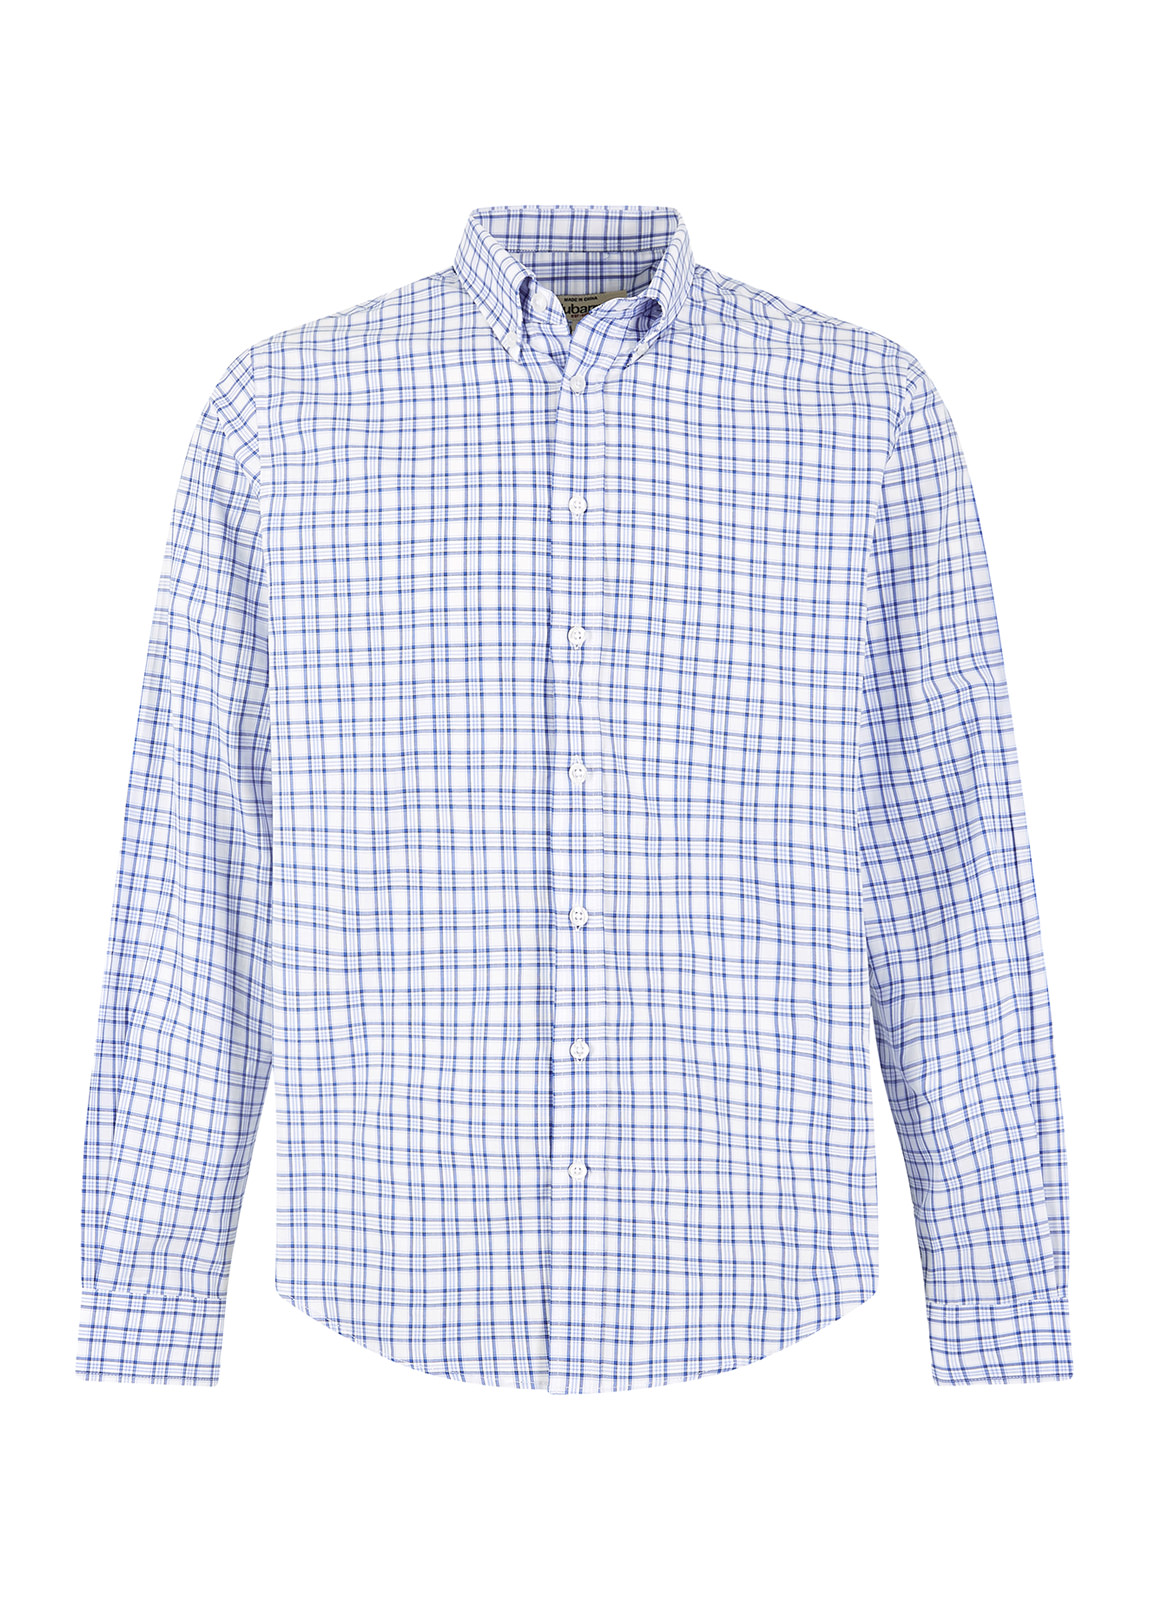 Dubarry_Ferns Shirt - Blue Multi_Image_2